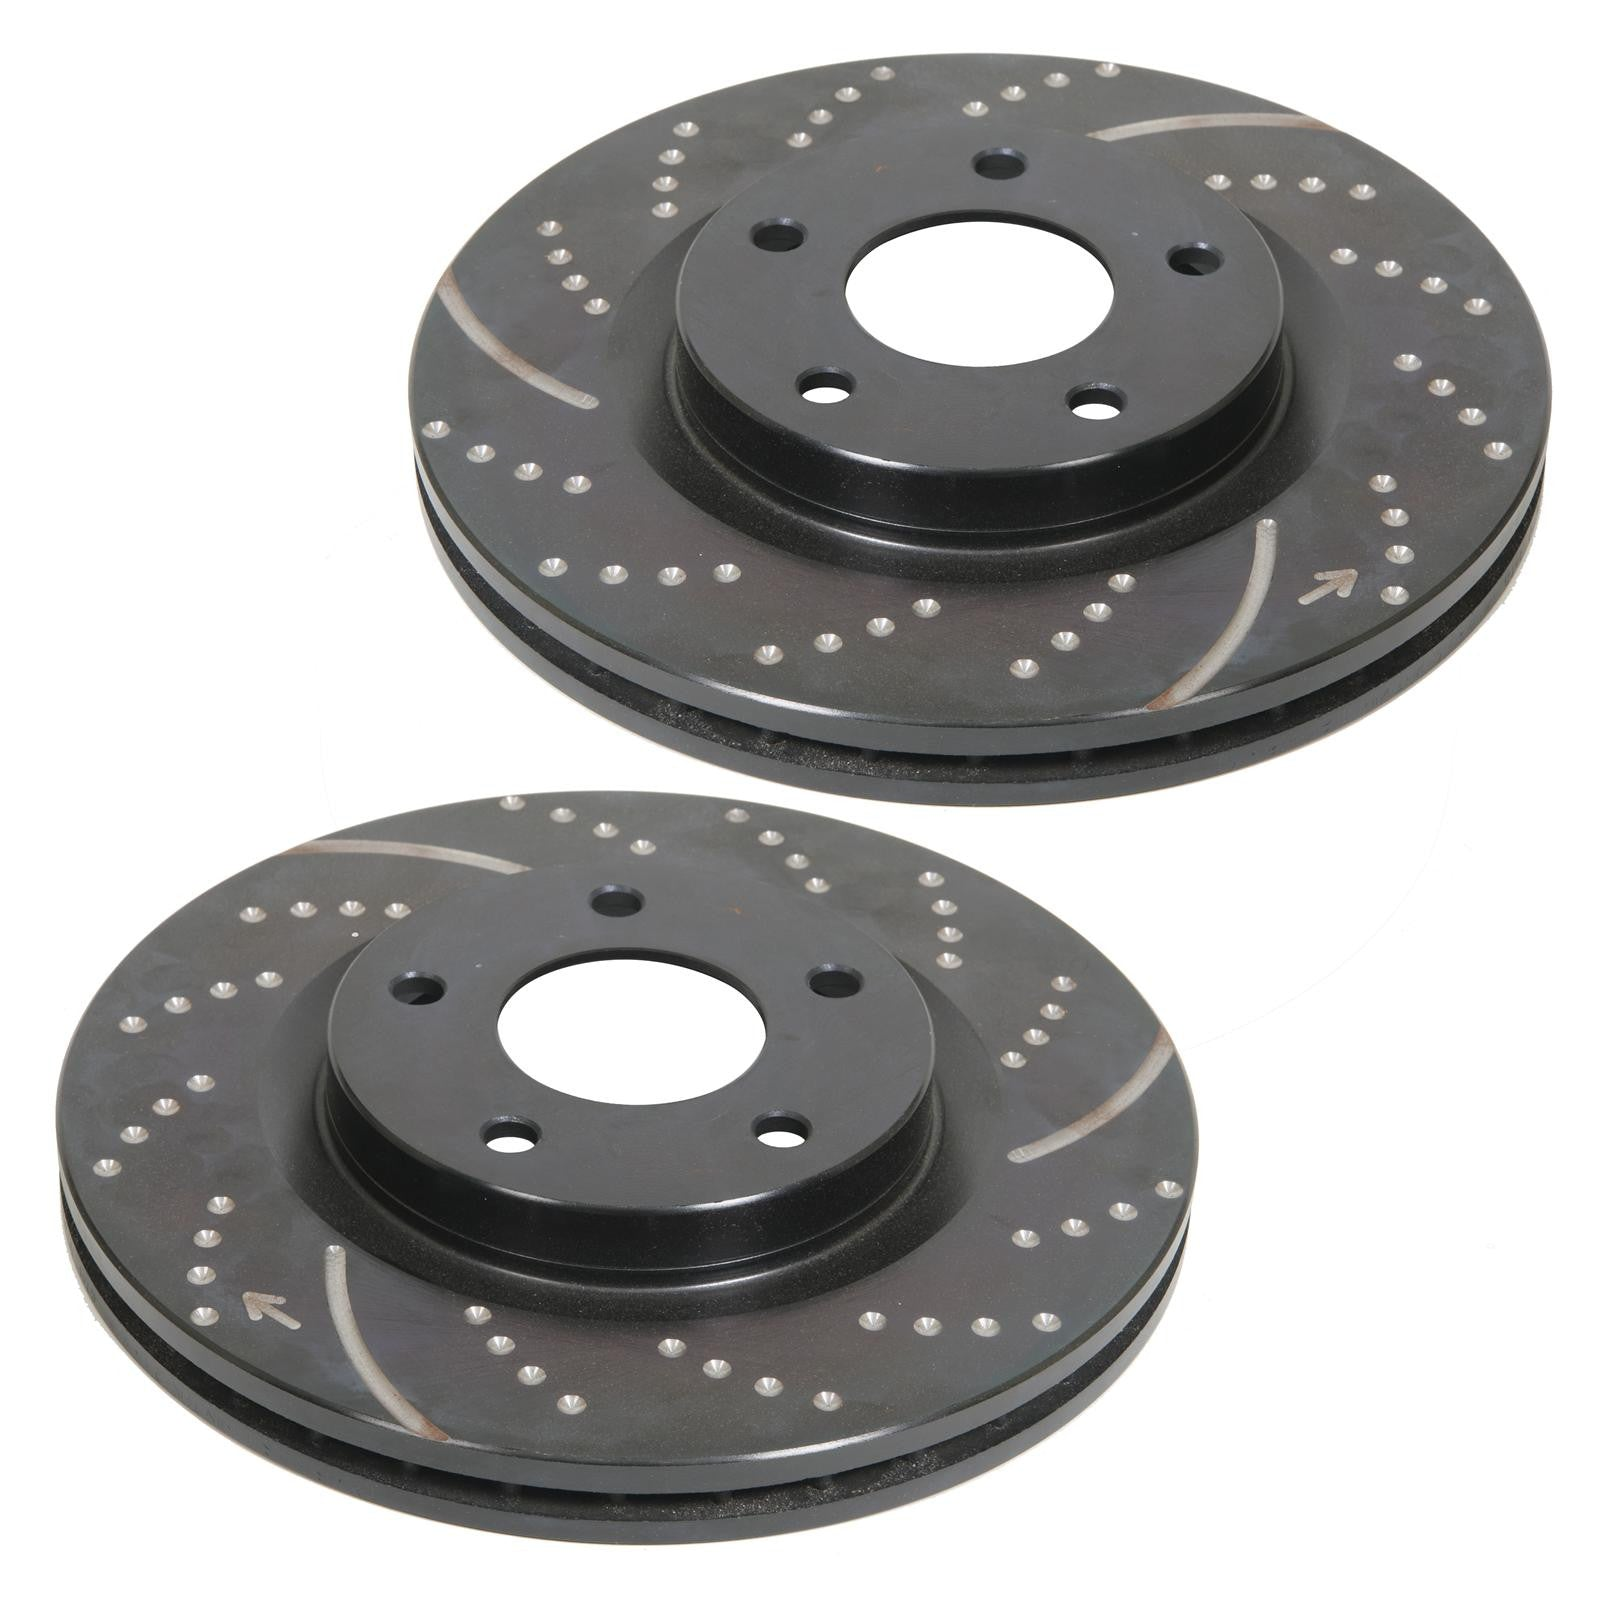 Pair of EB Front Vented Brake Discs to fit AUDI TT 3.2 02-06